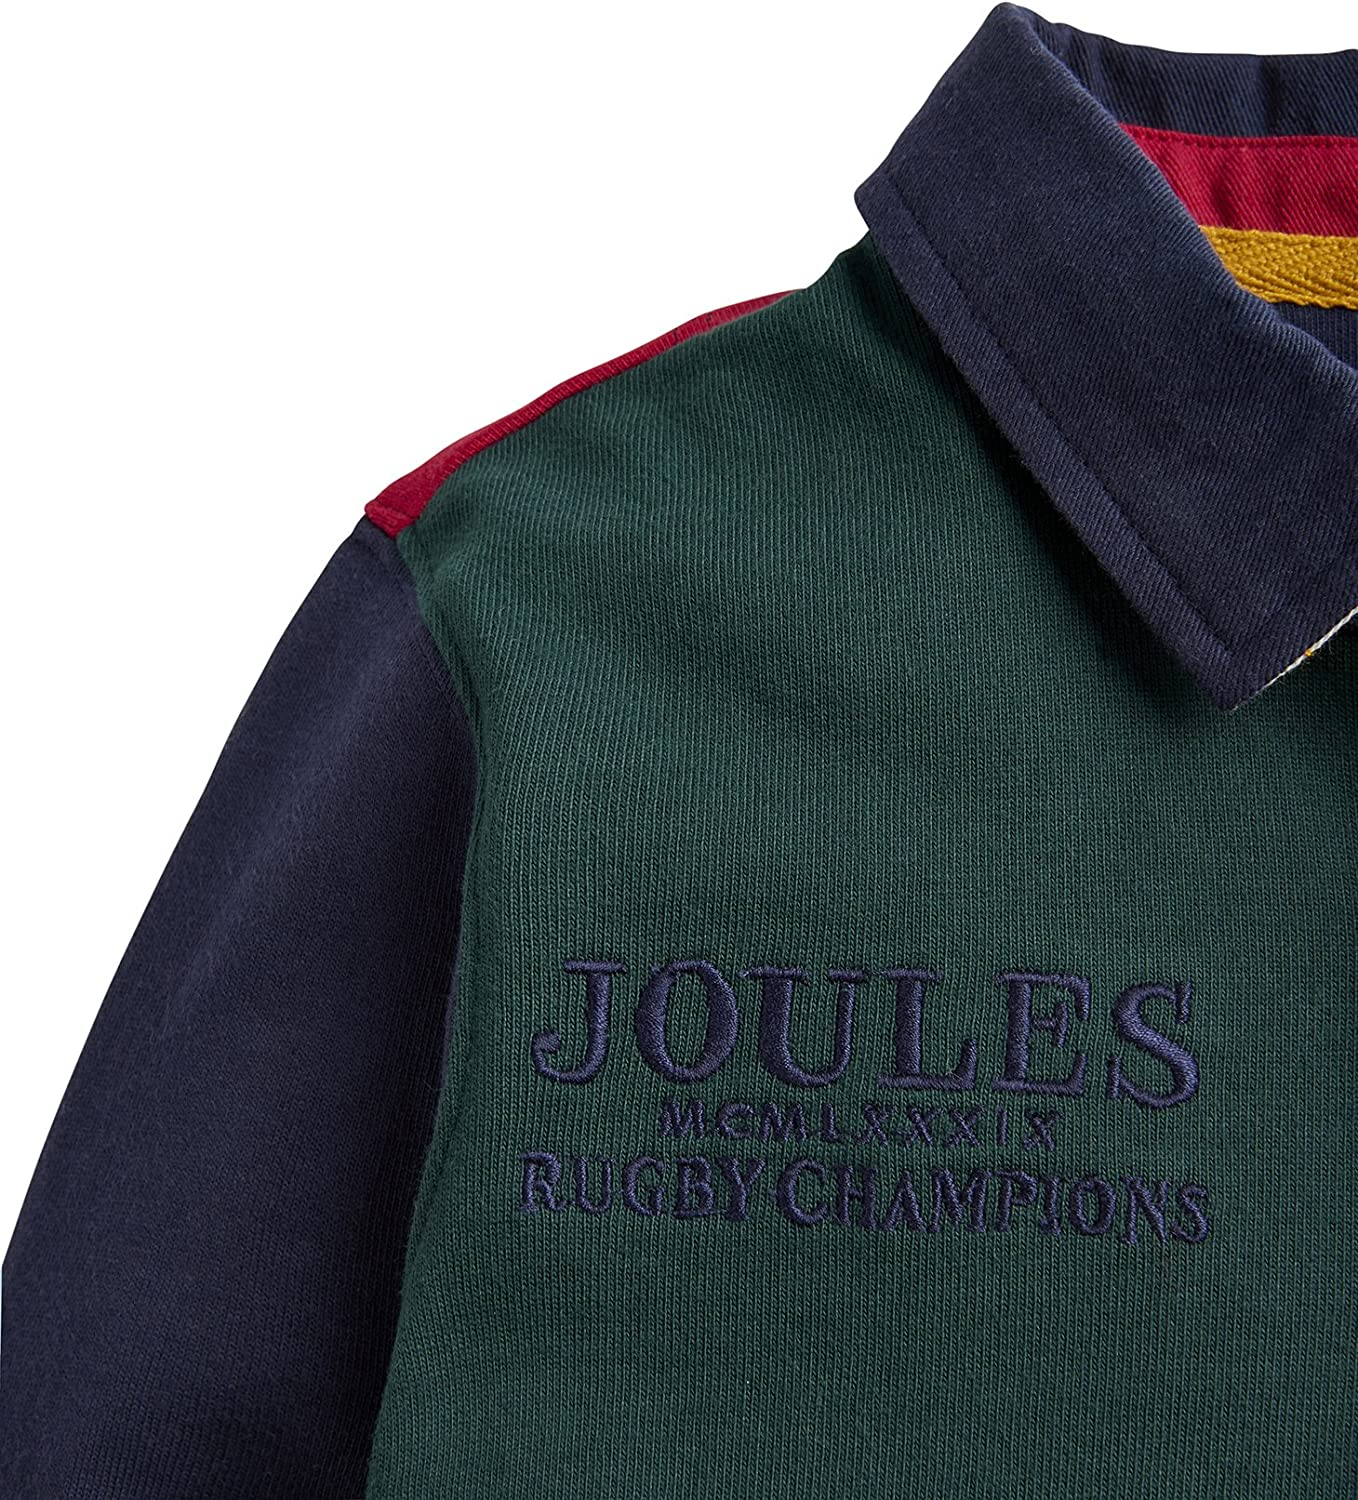 Harlequin Joules Rugby Shirt